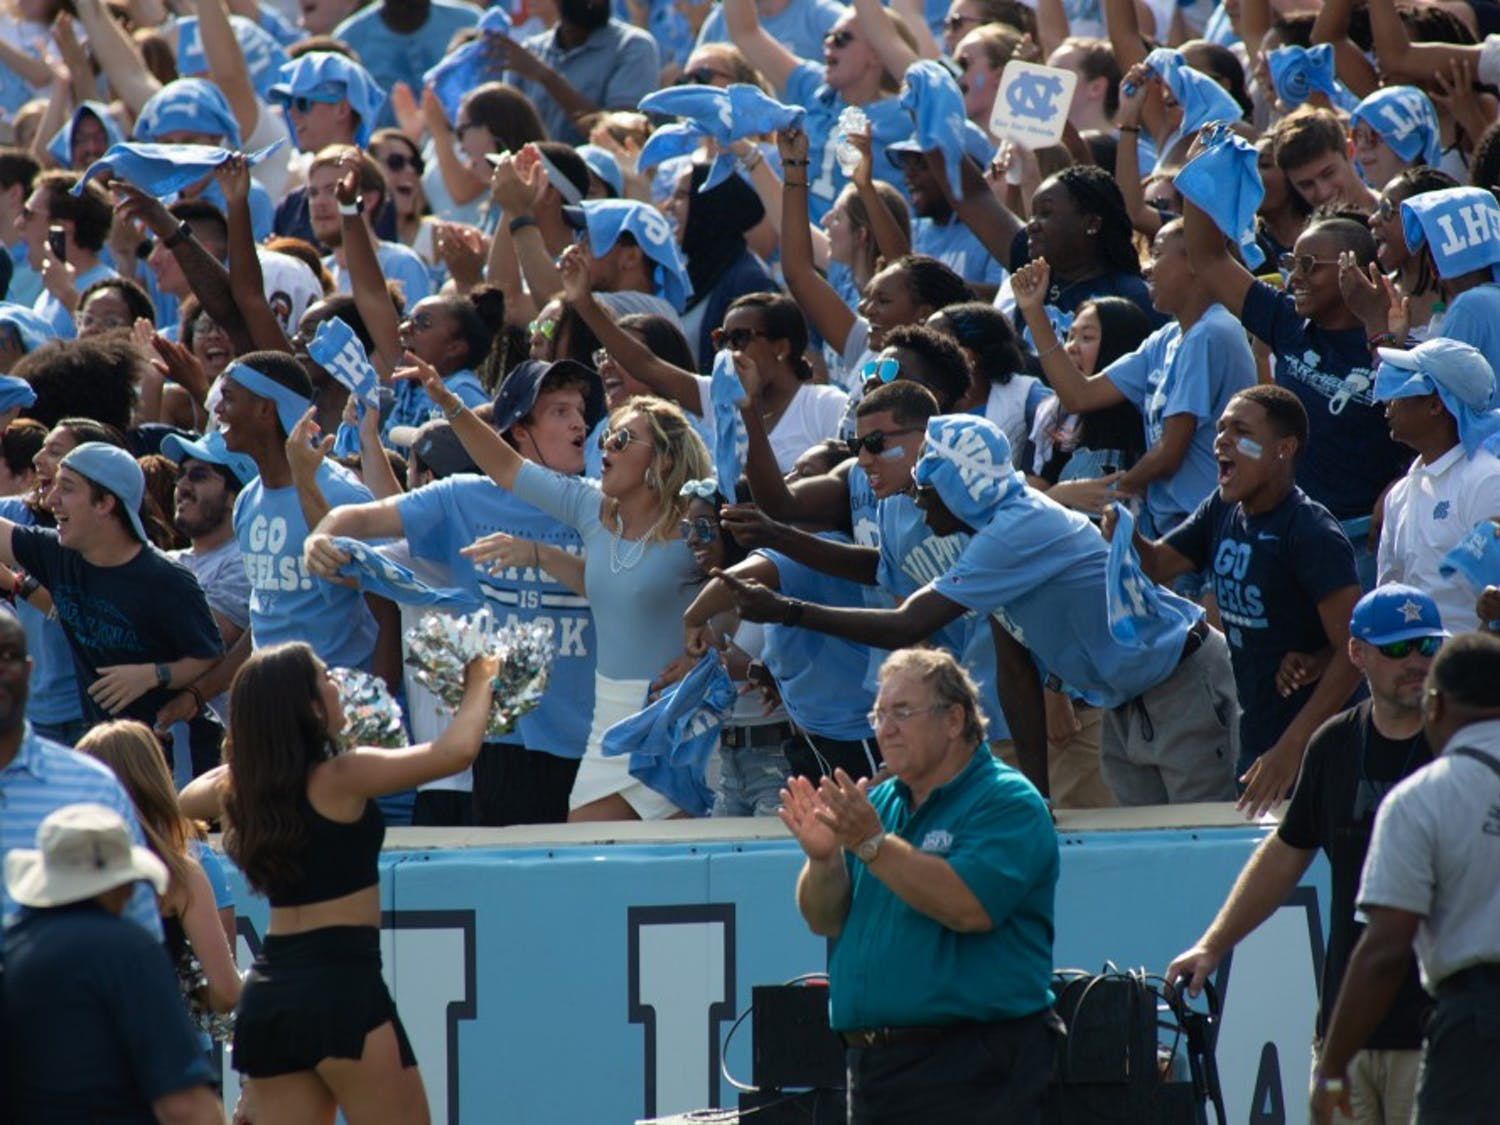 UNC's student section cheers on their team. UNC and No.1 Clemson faced off on Saturday, Sept. 28, 2019 in Kenan Memorial Stadium. UNC fell short of ending Clemson's 19 game winning streak, 21-20.